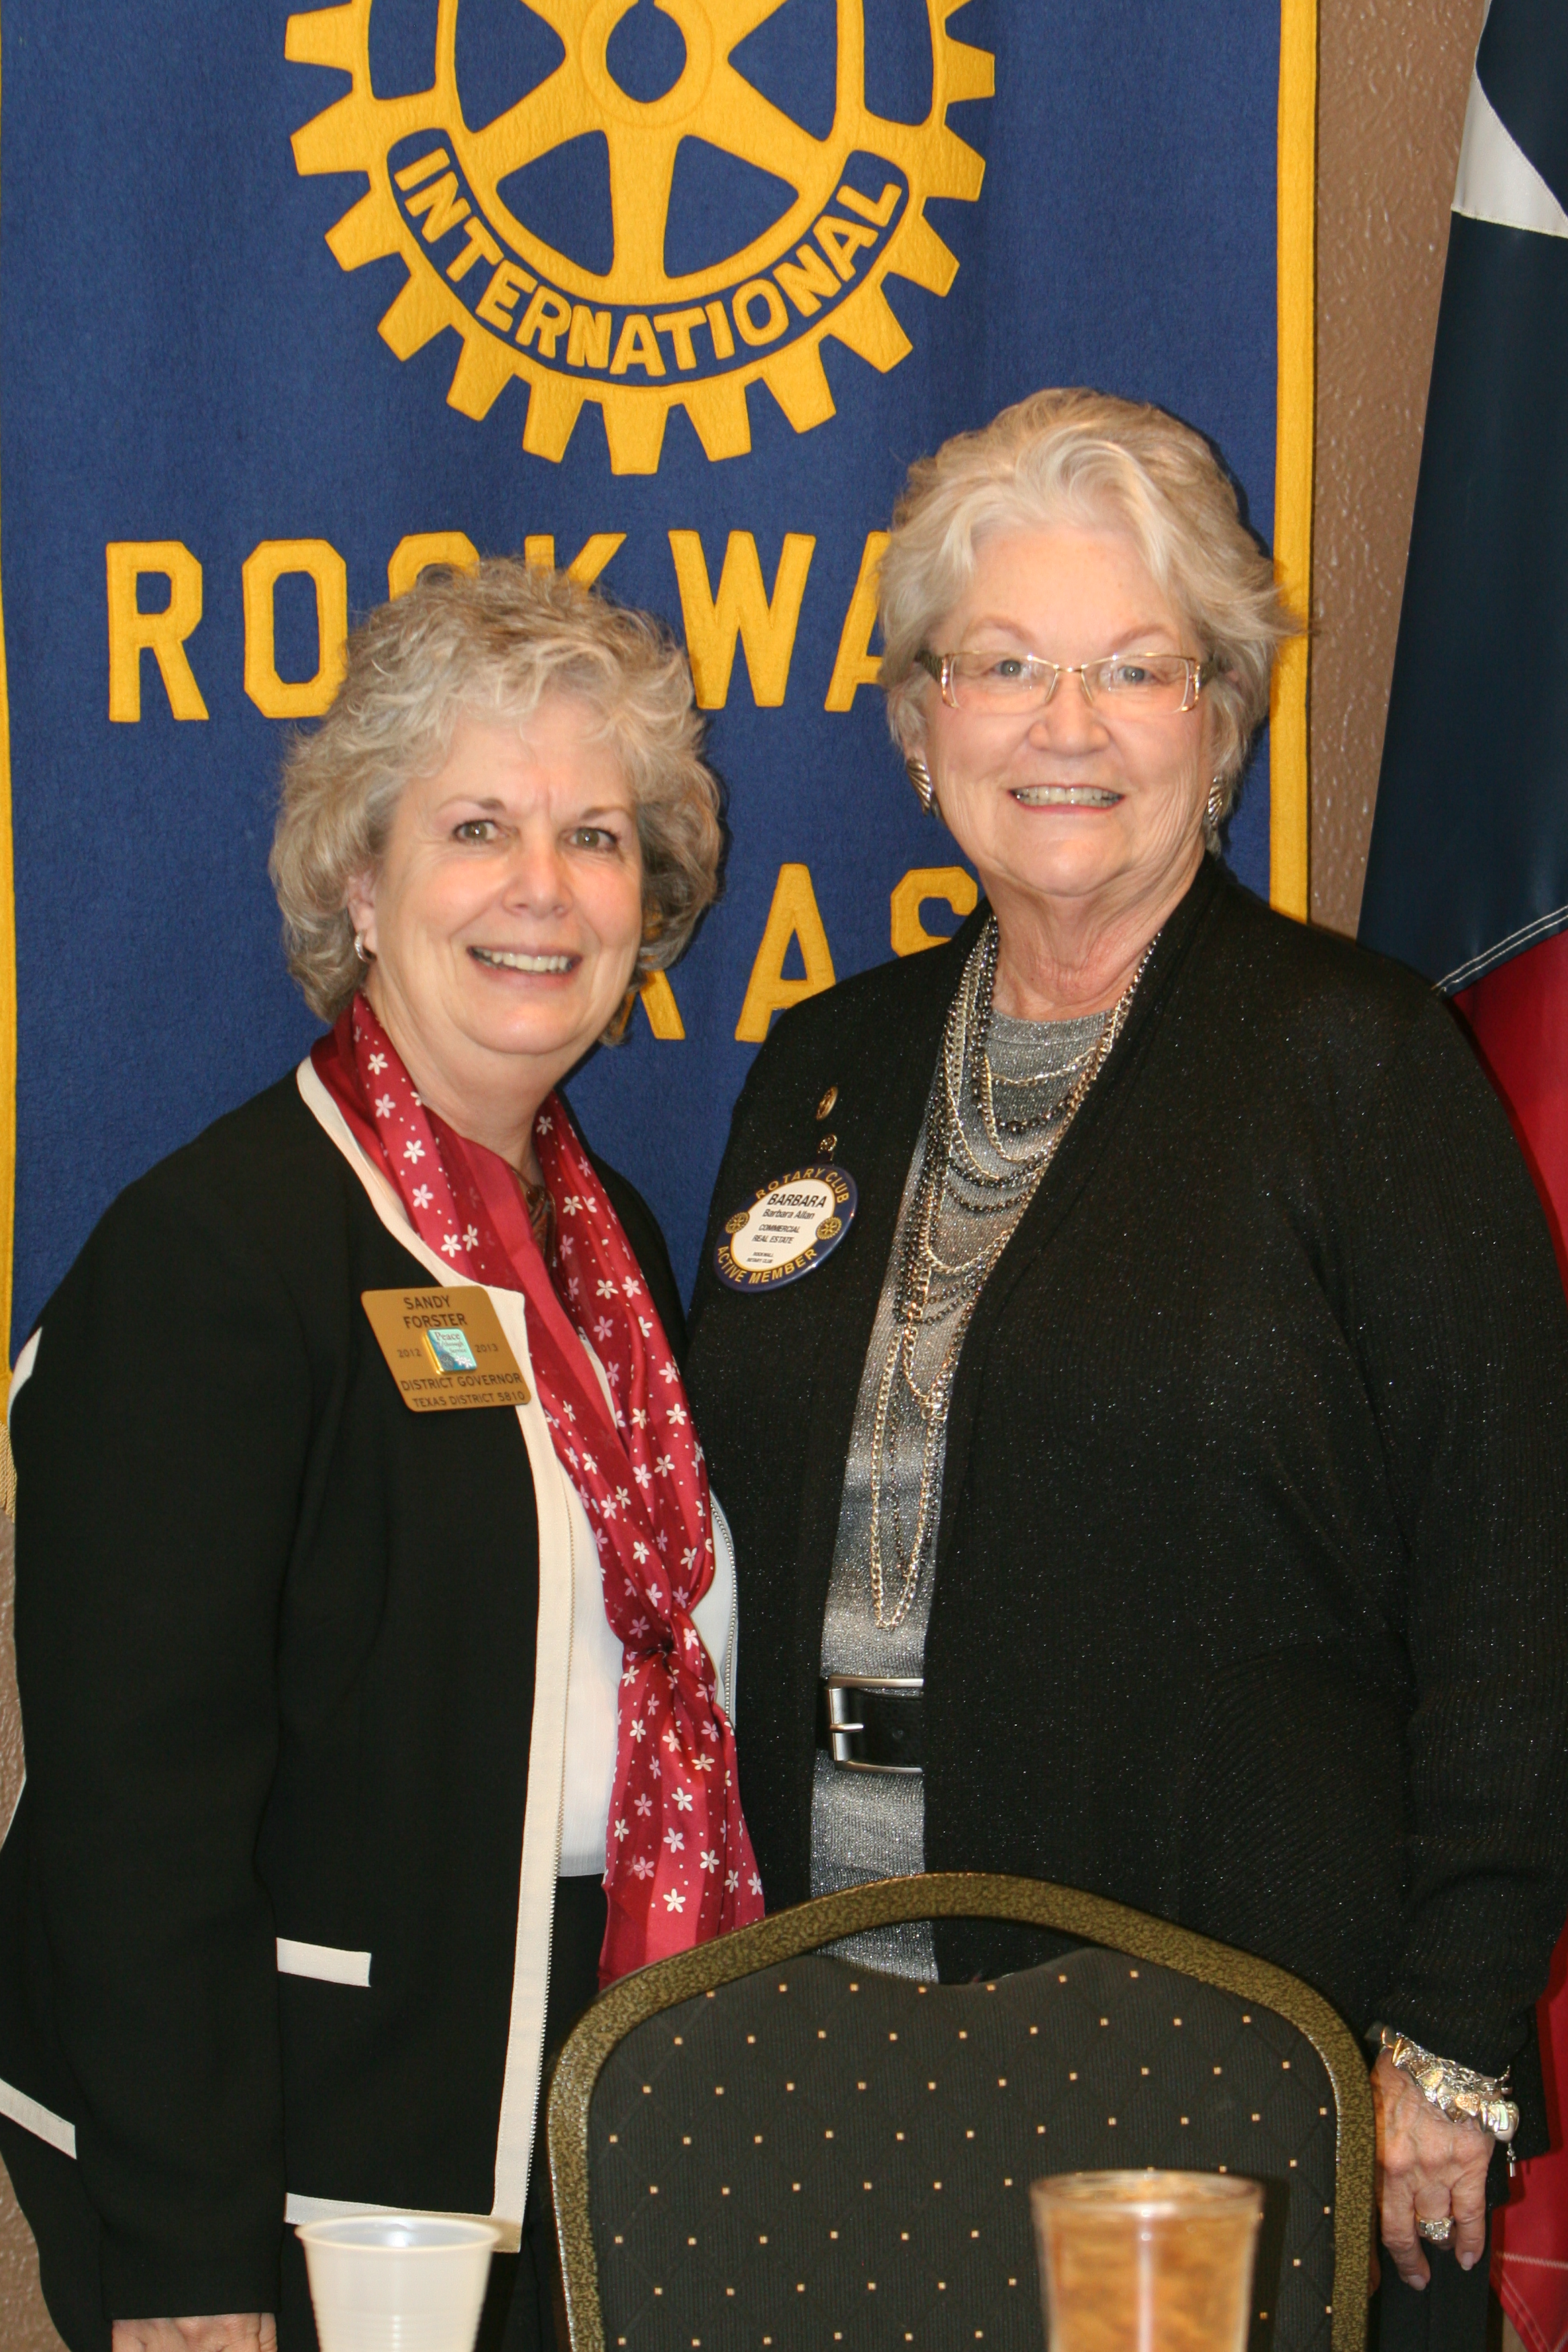 Rotary District 5810 Governor comes to Rockwall